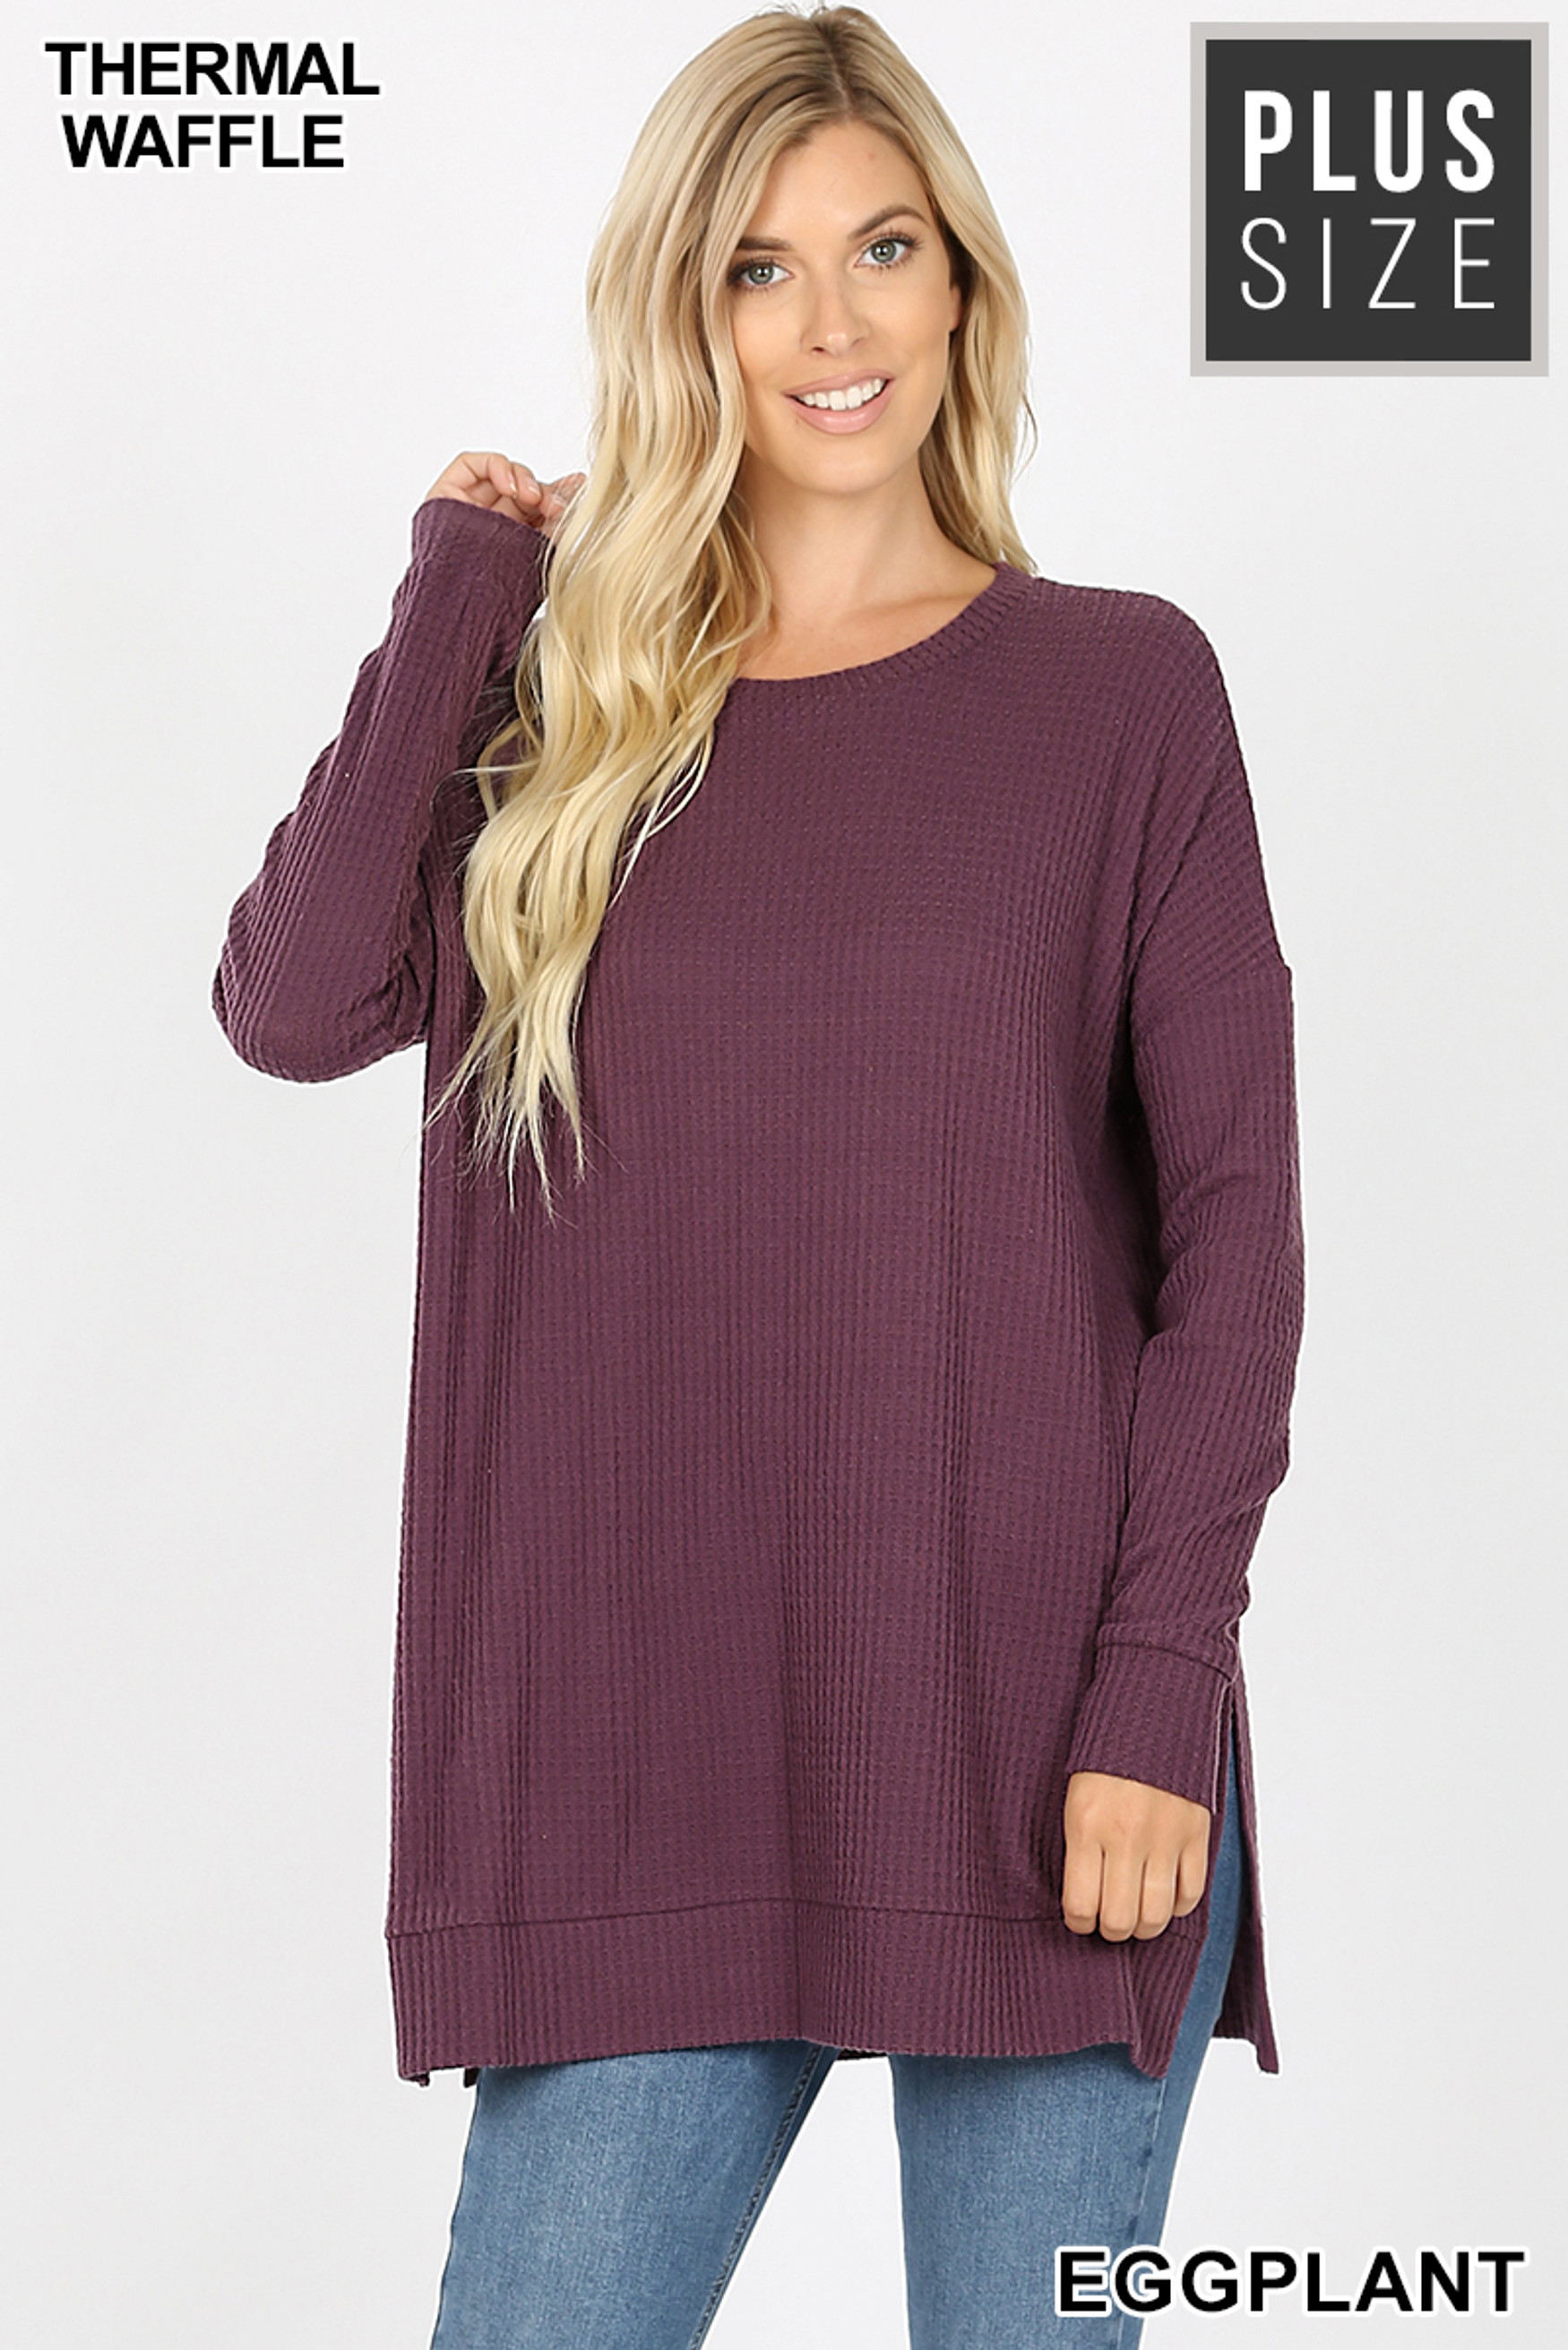 Front image of Eggplant Brushed Thermal Waffle Knit Round Neck Plus Size Sweater